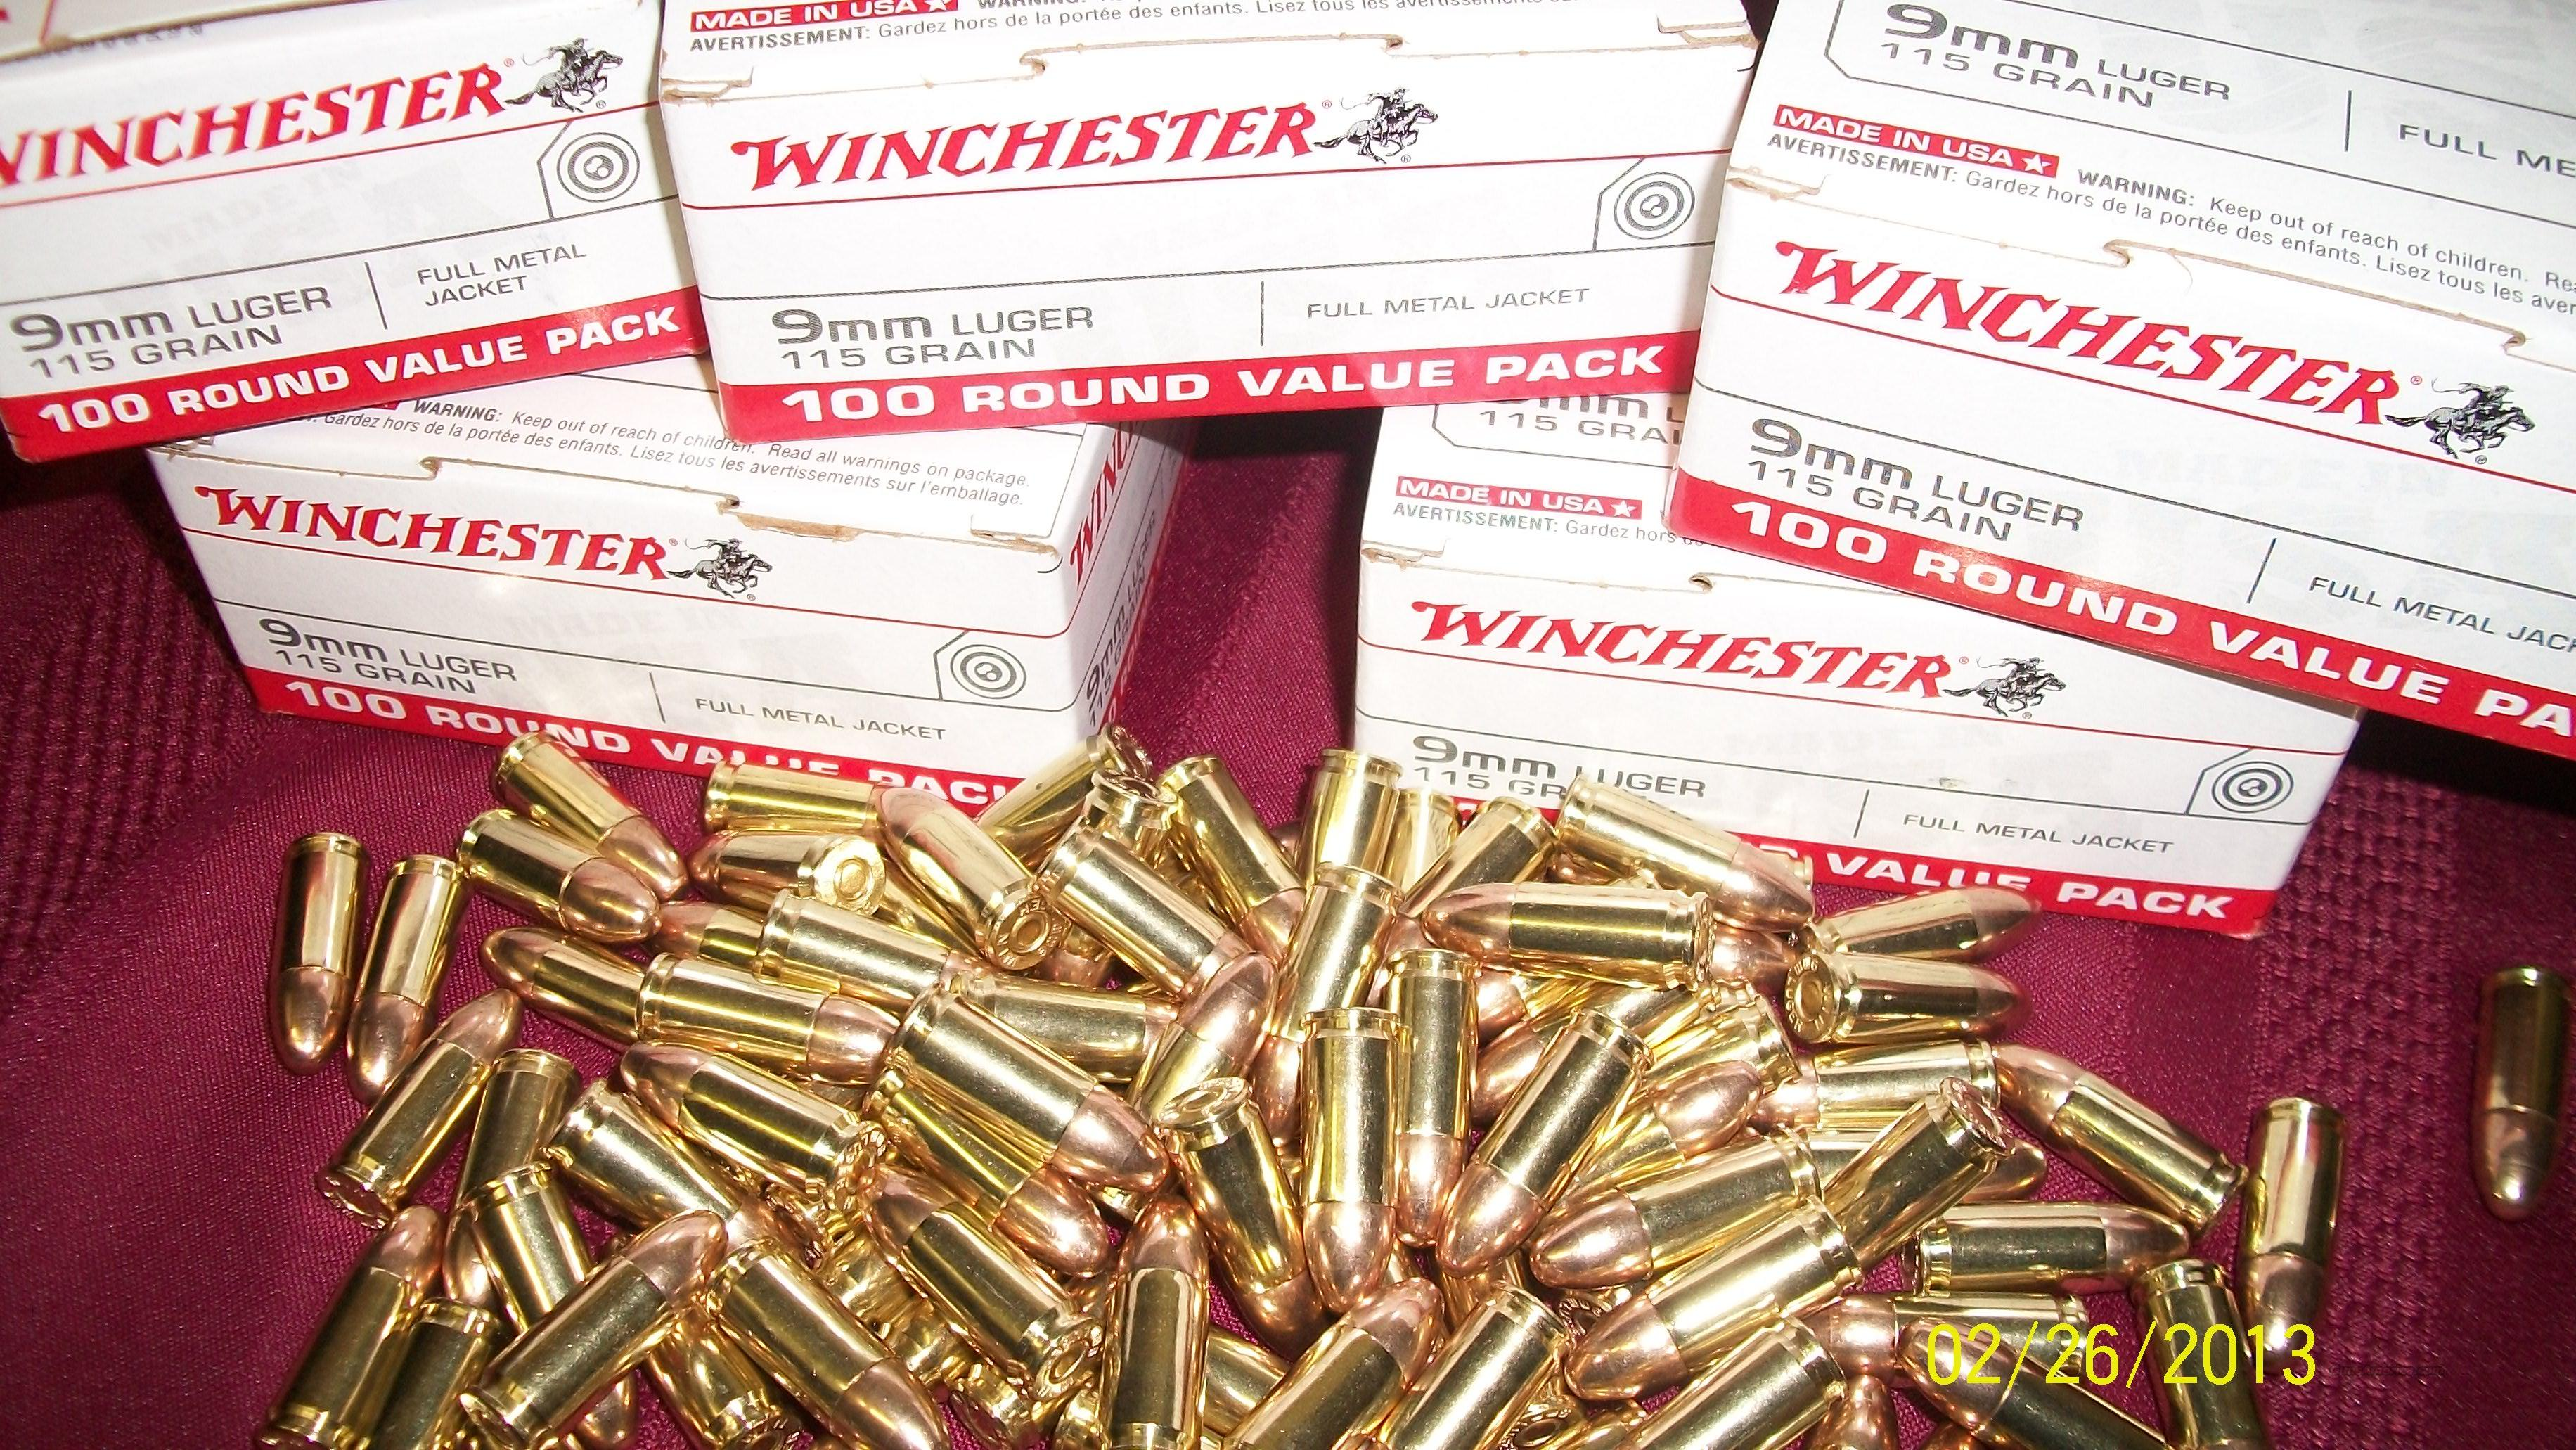 Winchester 9mm Luger Ammo 500 rounds